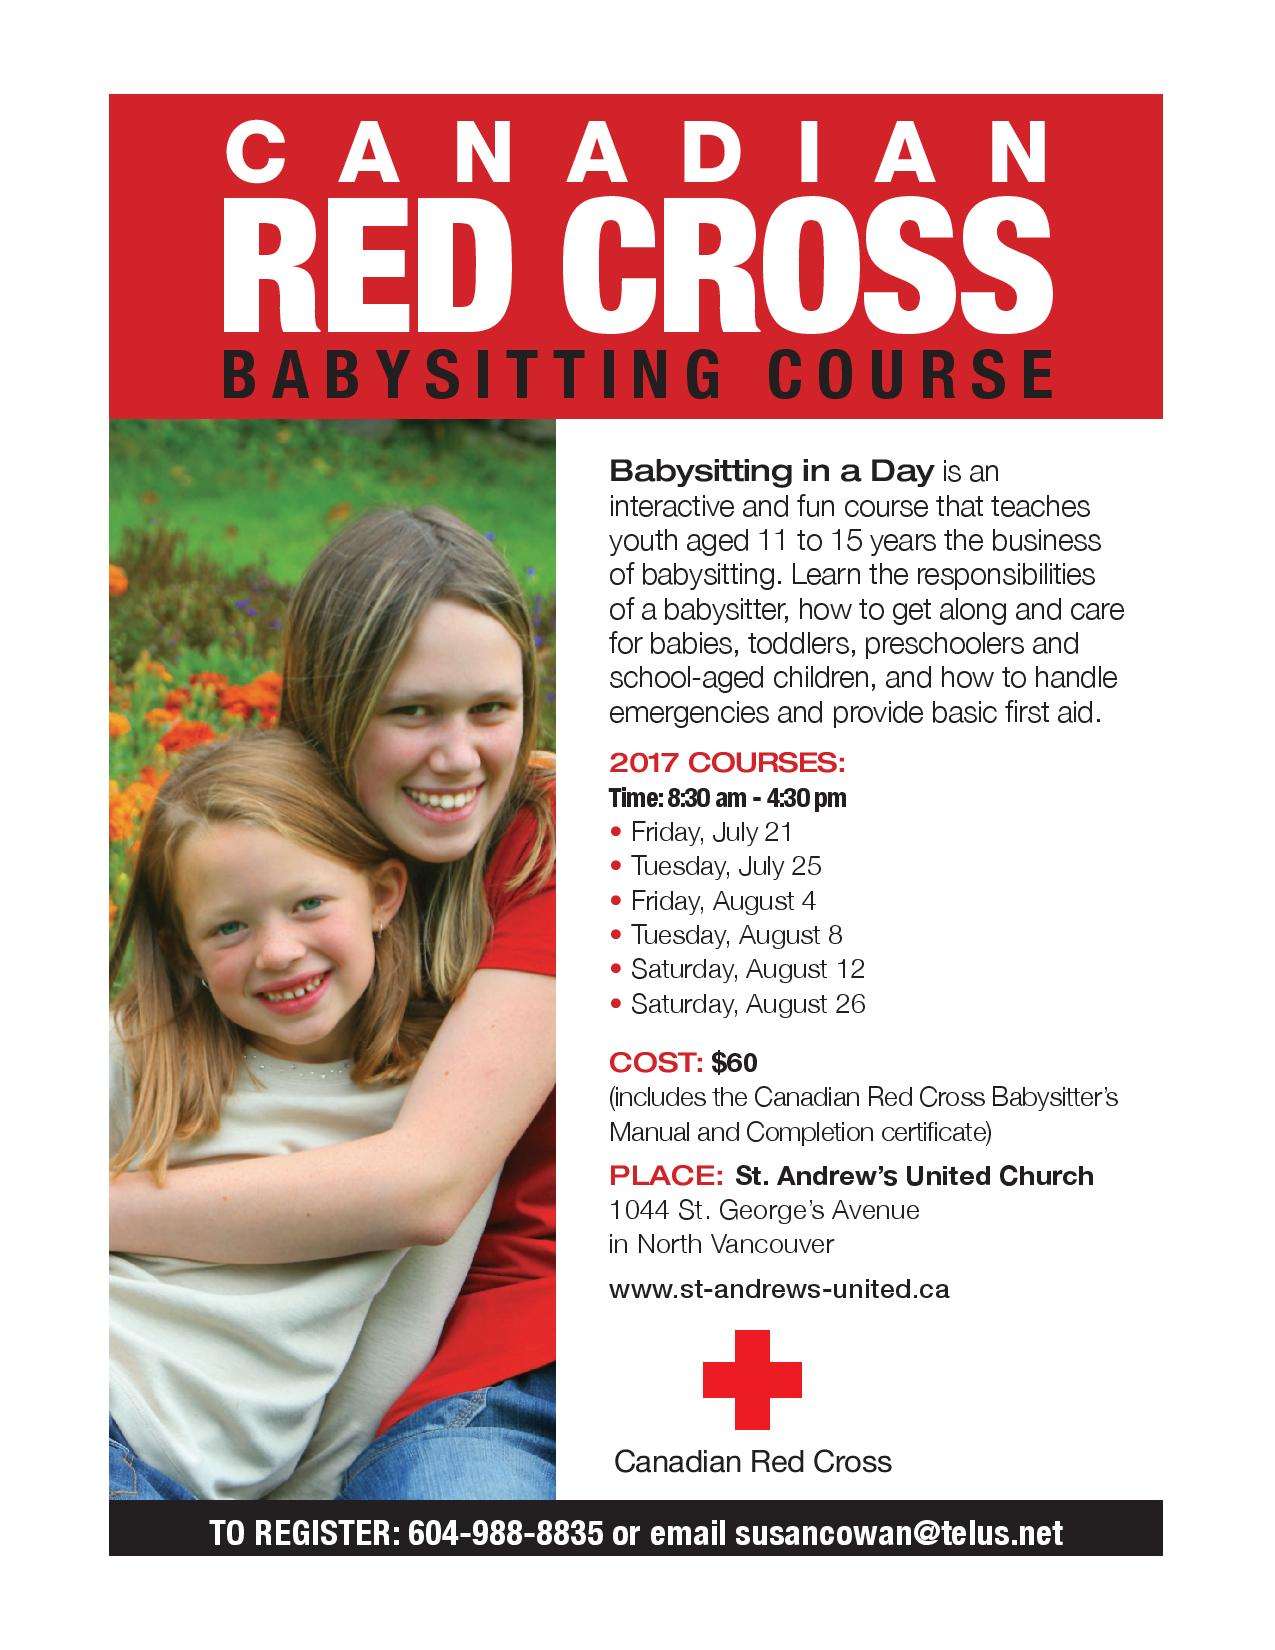 Canadian red cross babysitting course vancouver events and fun course that teaches youth aged 11 to 15 years the business of babysitting they learn the responsibilities of a babysitter how to get xflitez Images